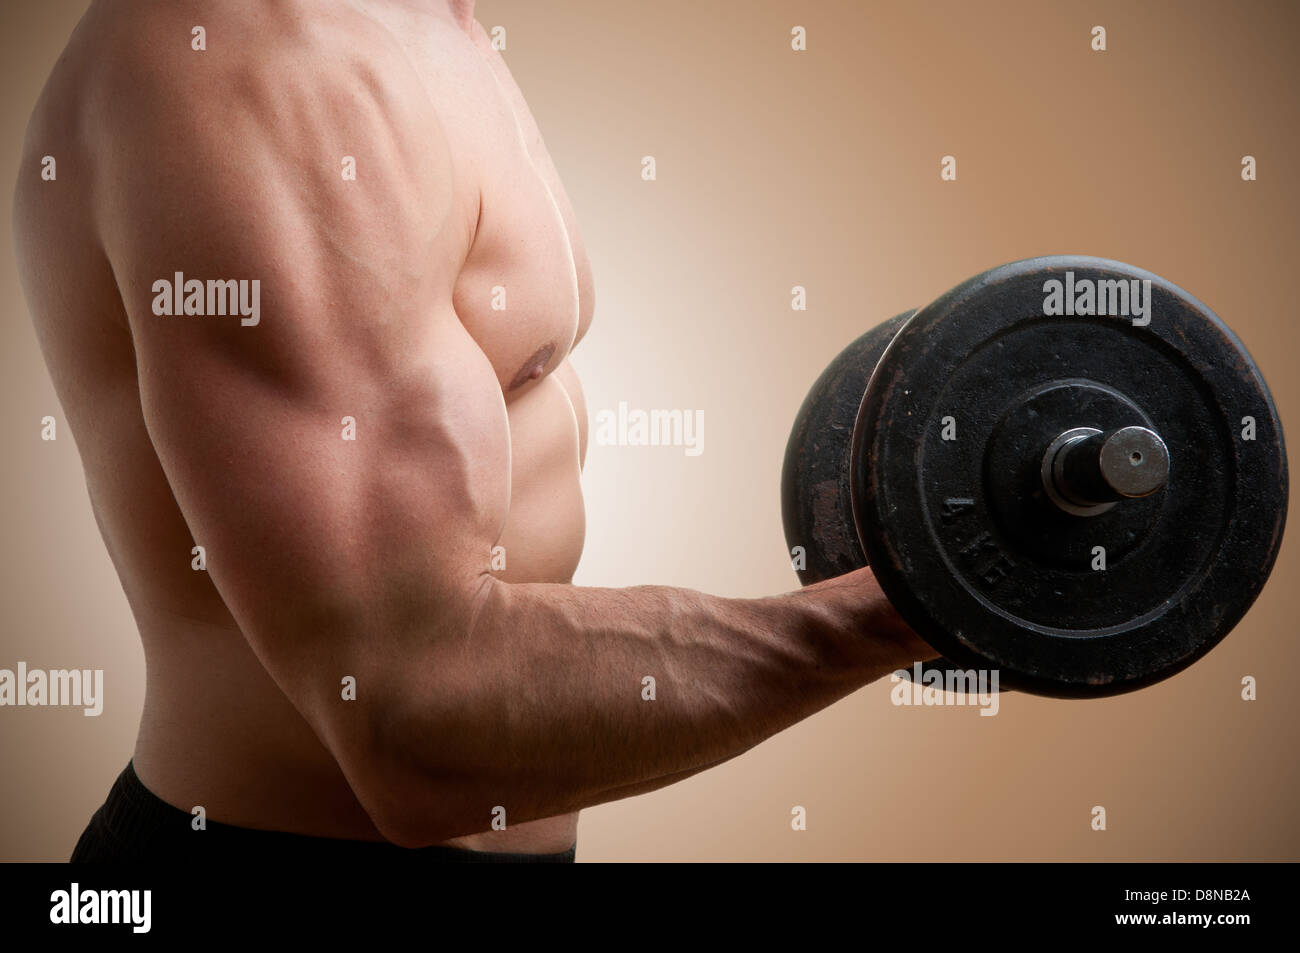 Personal Trainer doing standing dumbbell curls for training his biceps - Stock Image